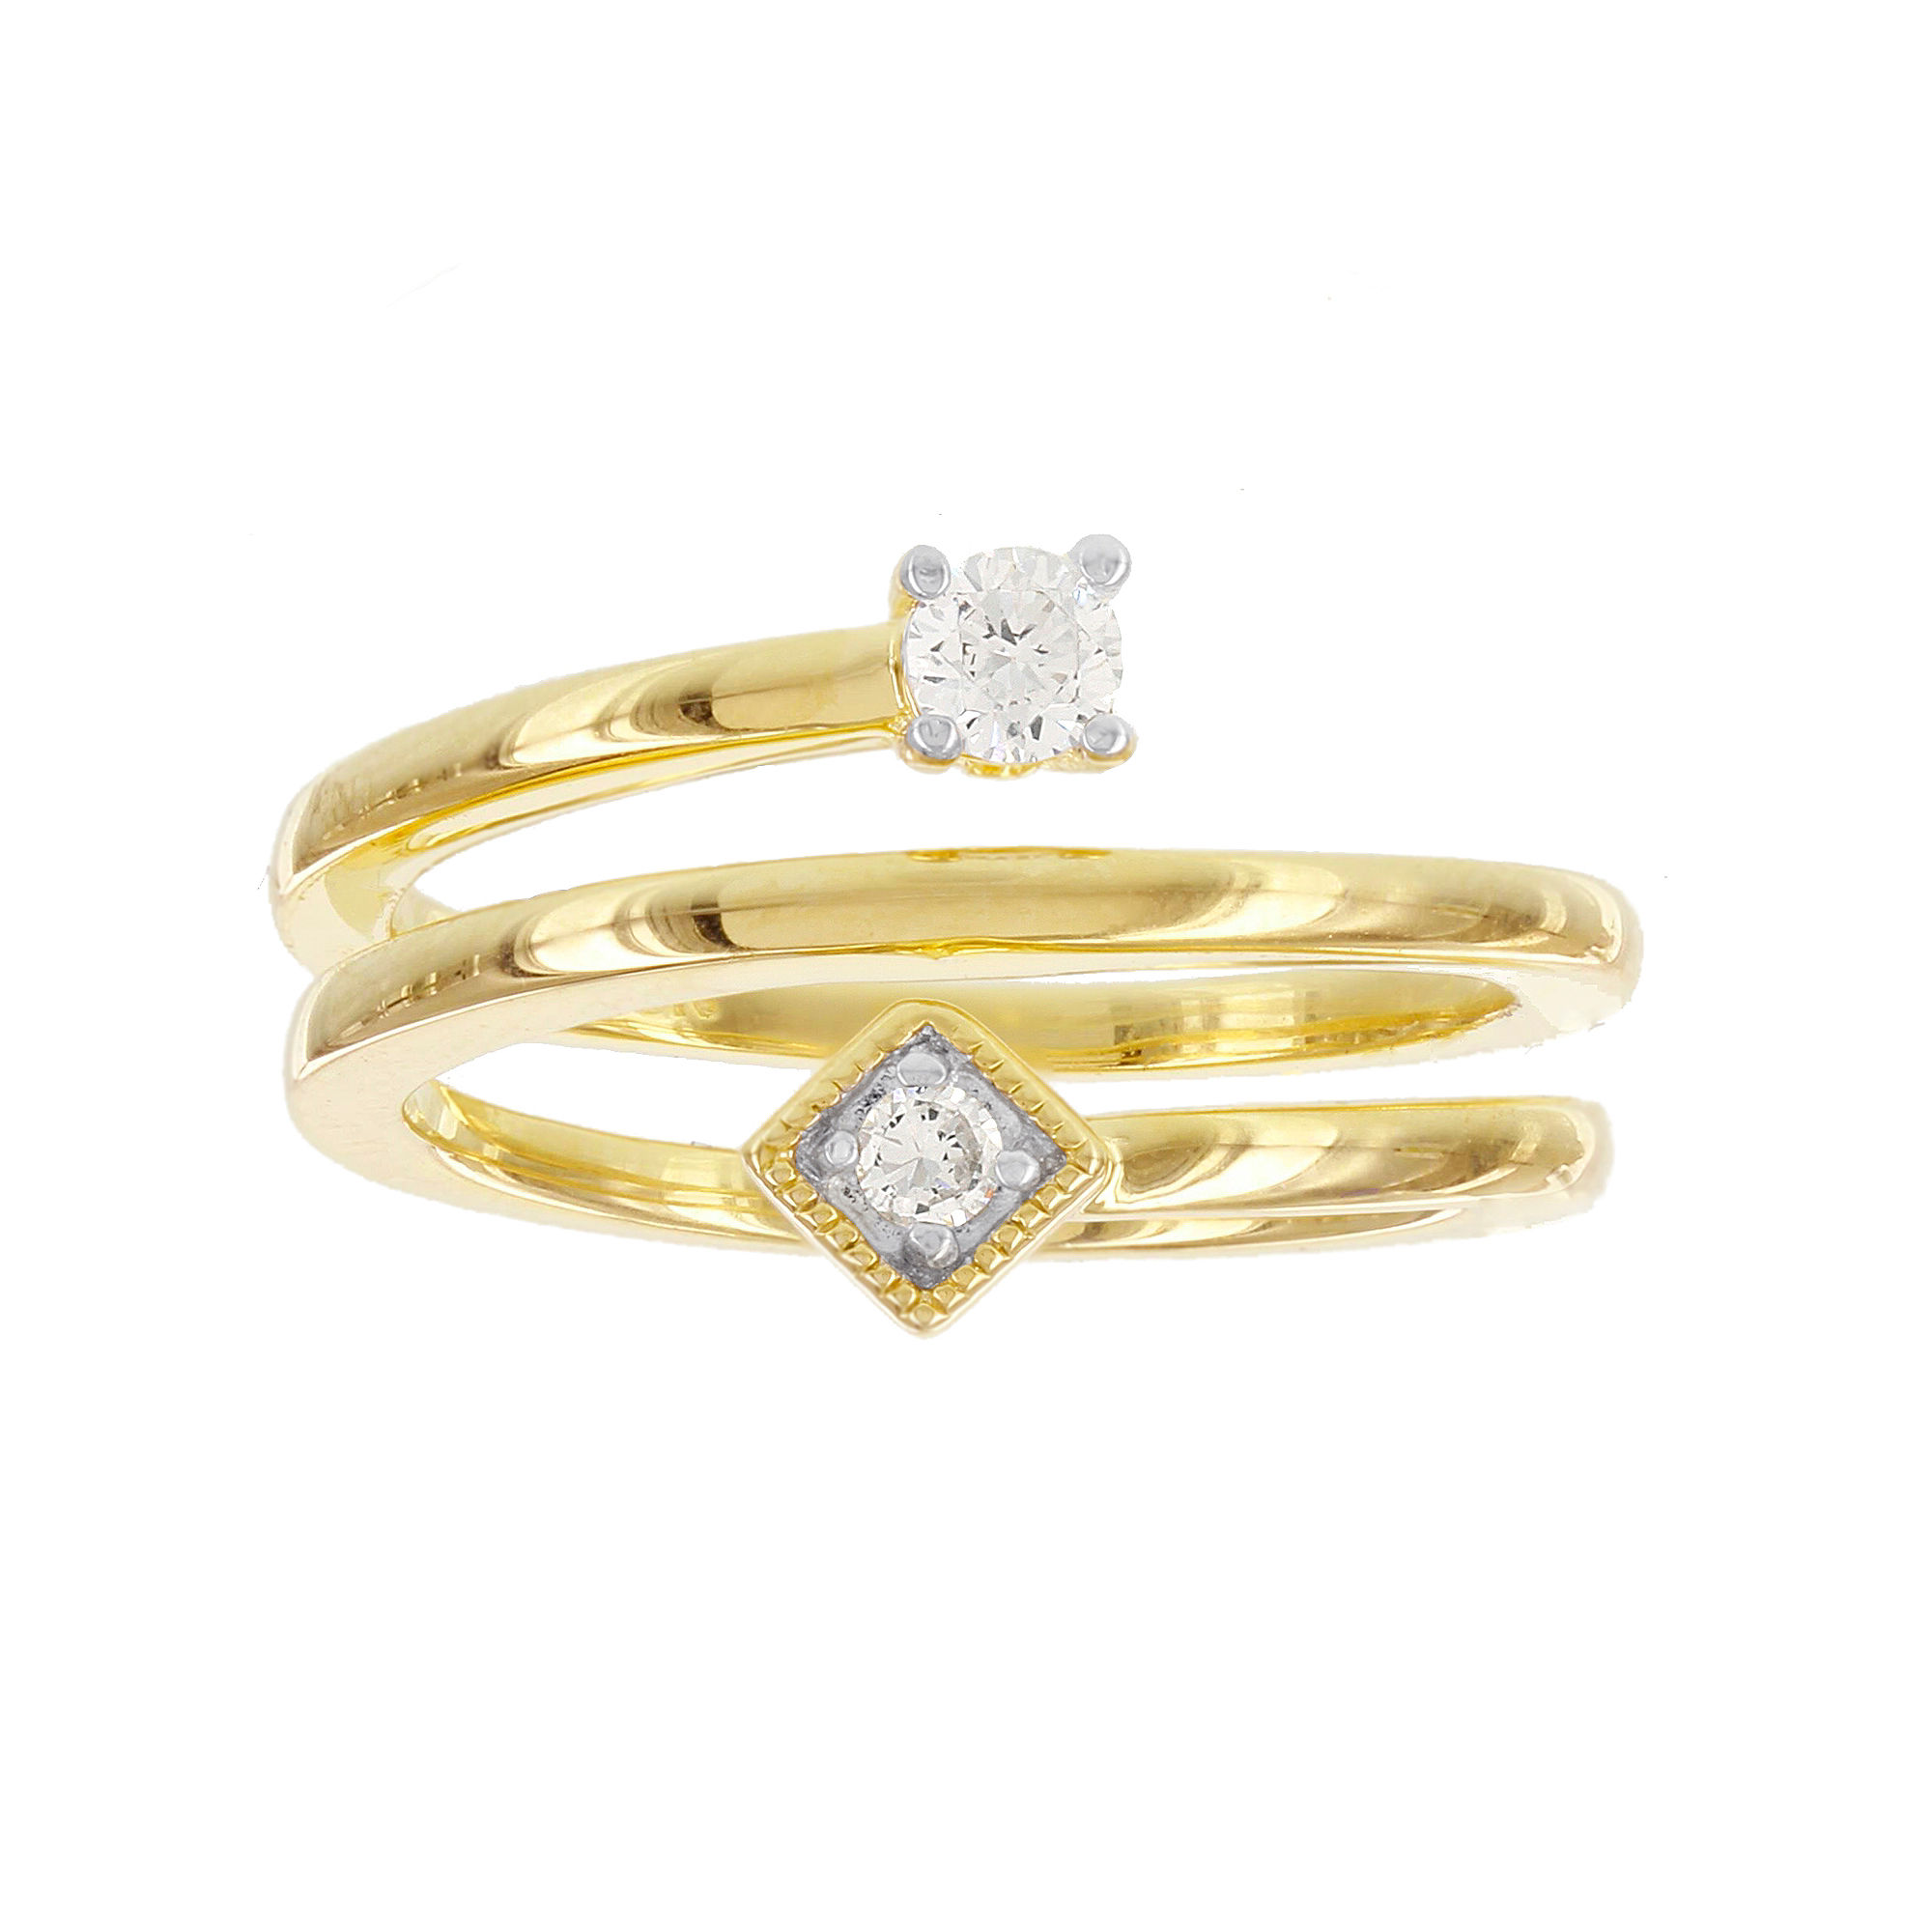 Womens 1/5 CT. T.W. White Diamond Gold Over Silver Cocktail Ring